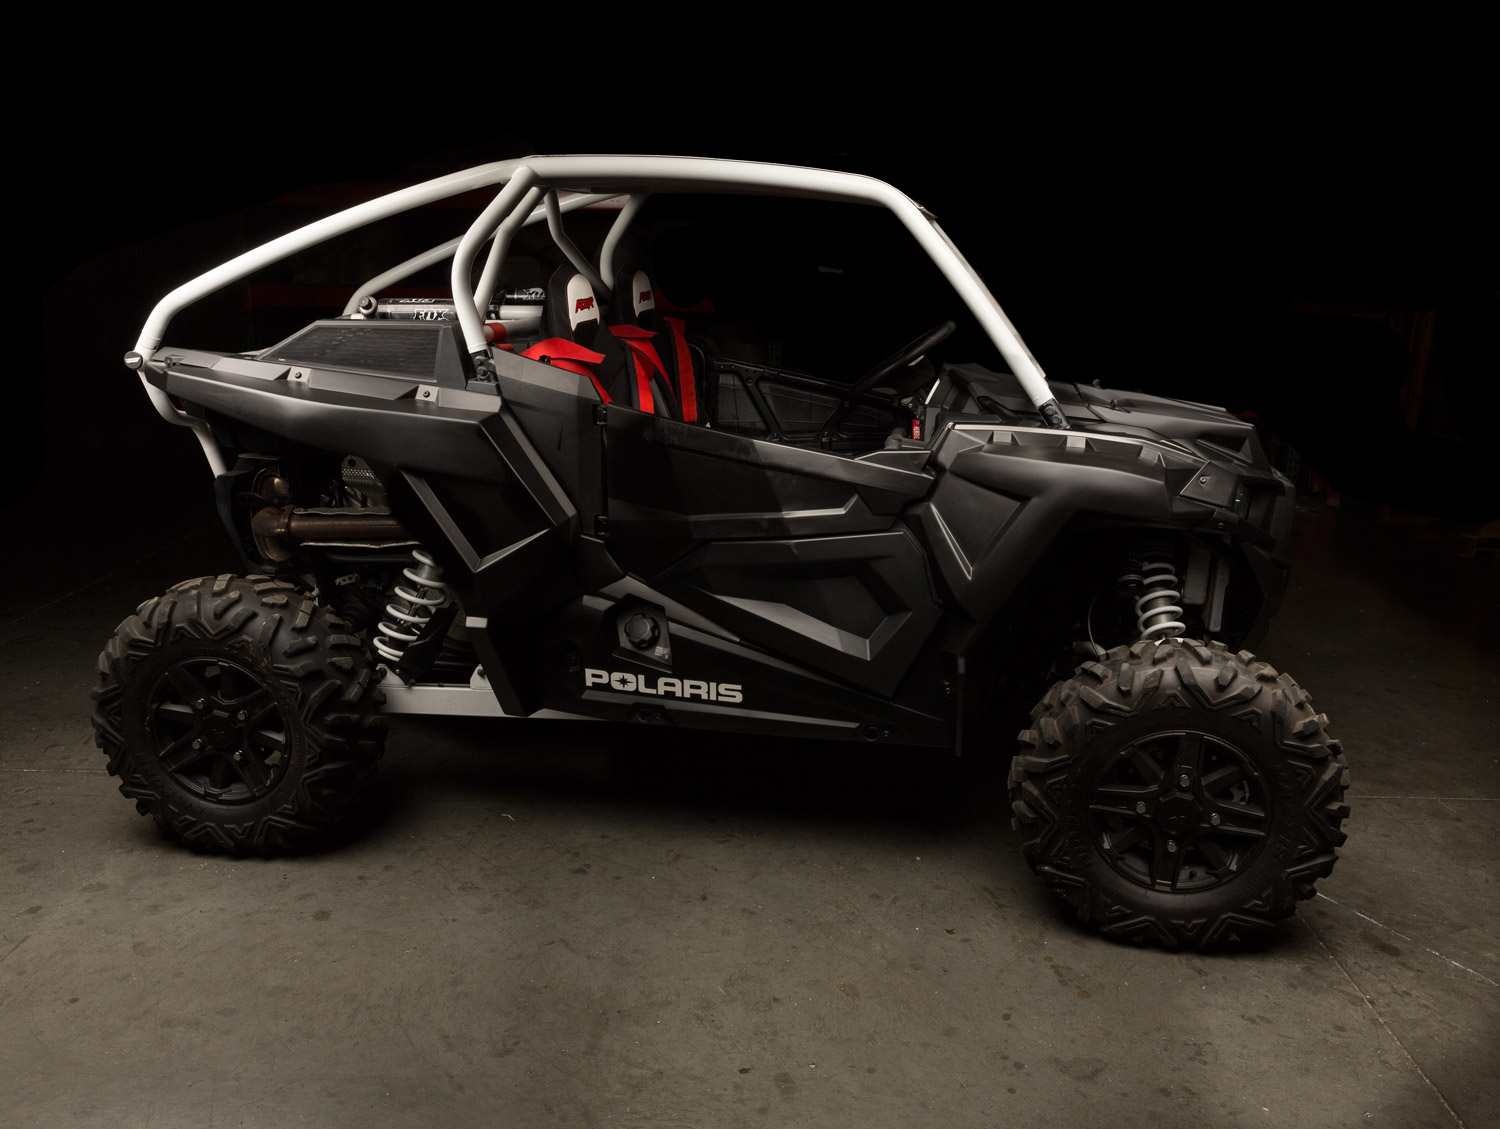 Polaris Rzr 1000 Turbo >> Maier Manufacturing introduces the Widebody Kit and the X-17 Hood for the Polaris RZR XP 1000 ...